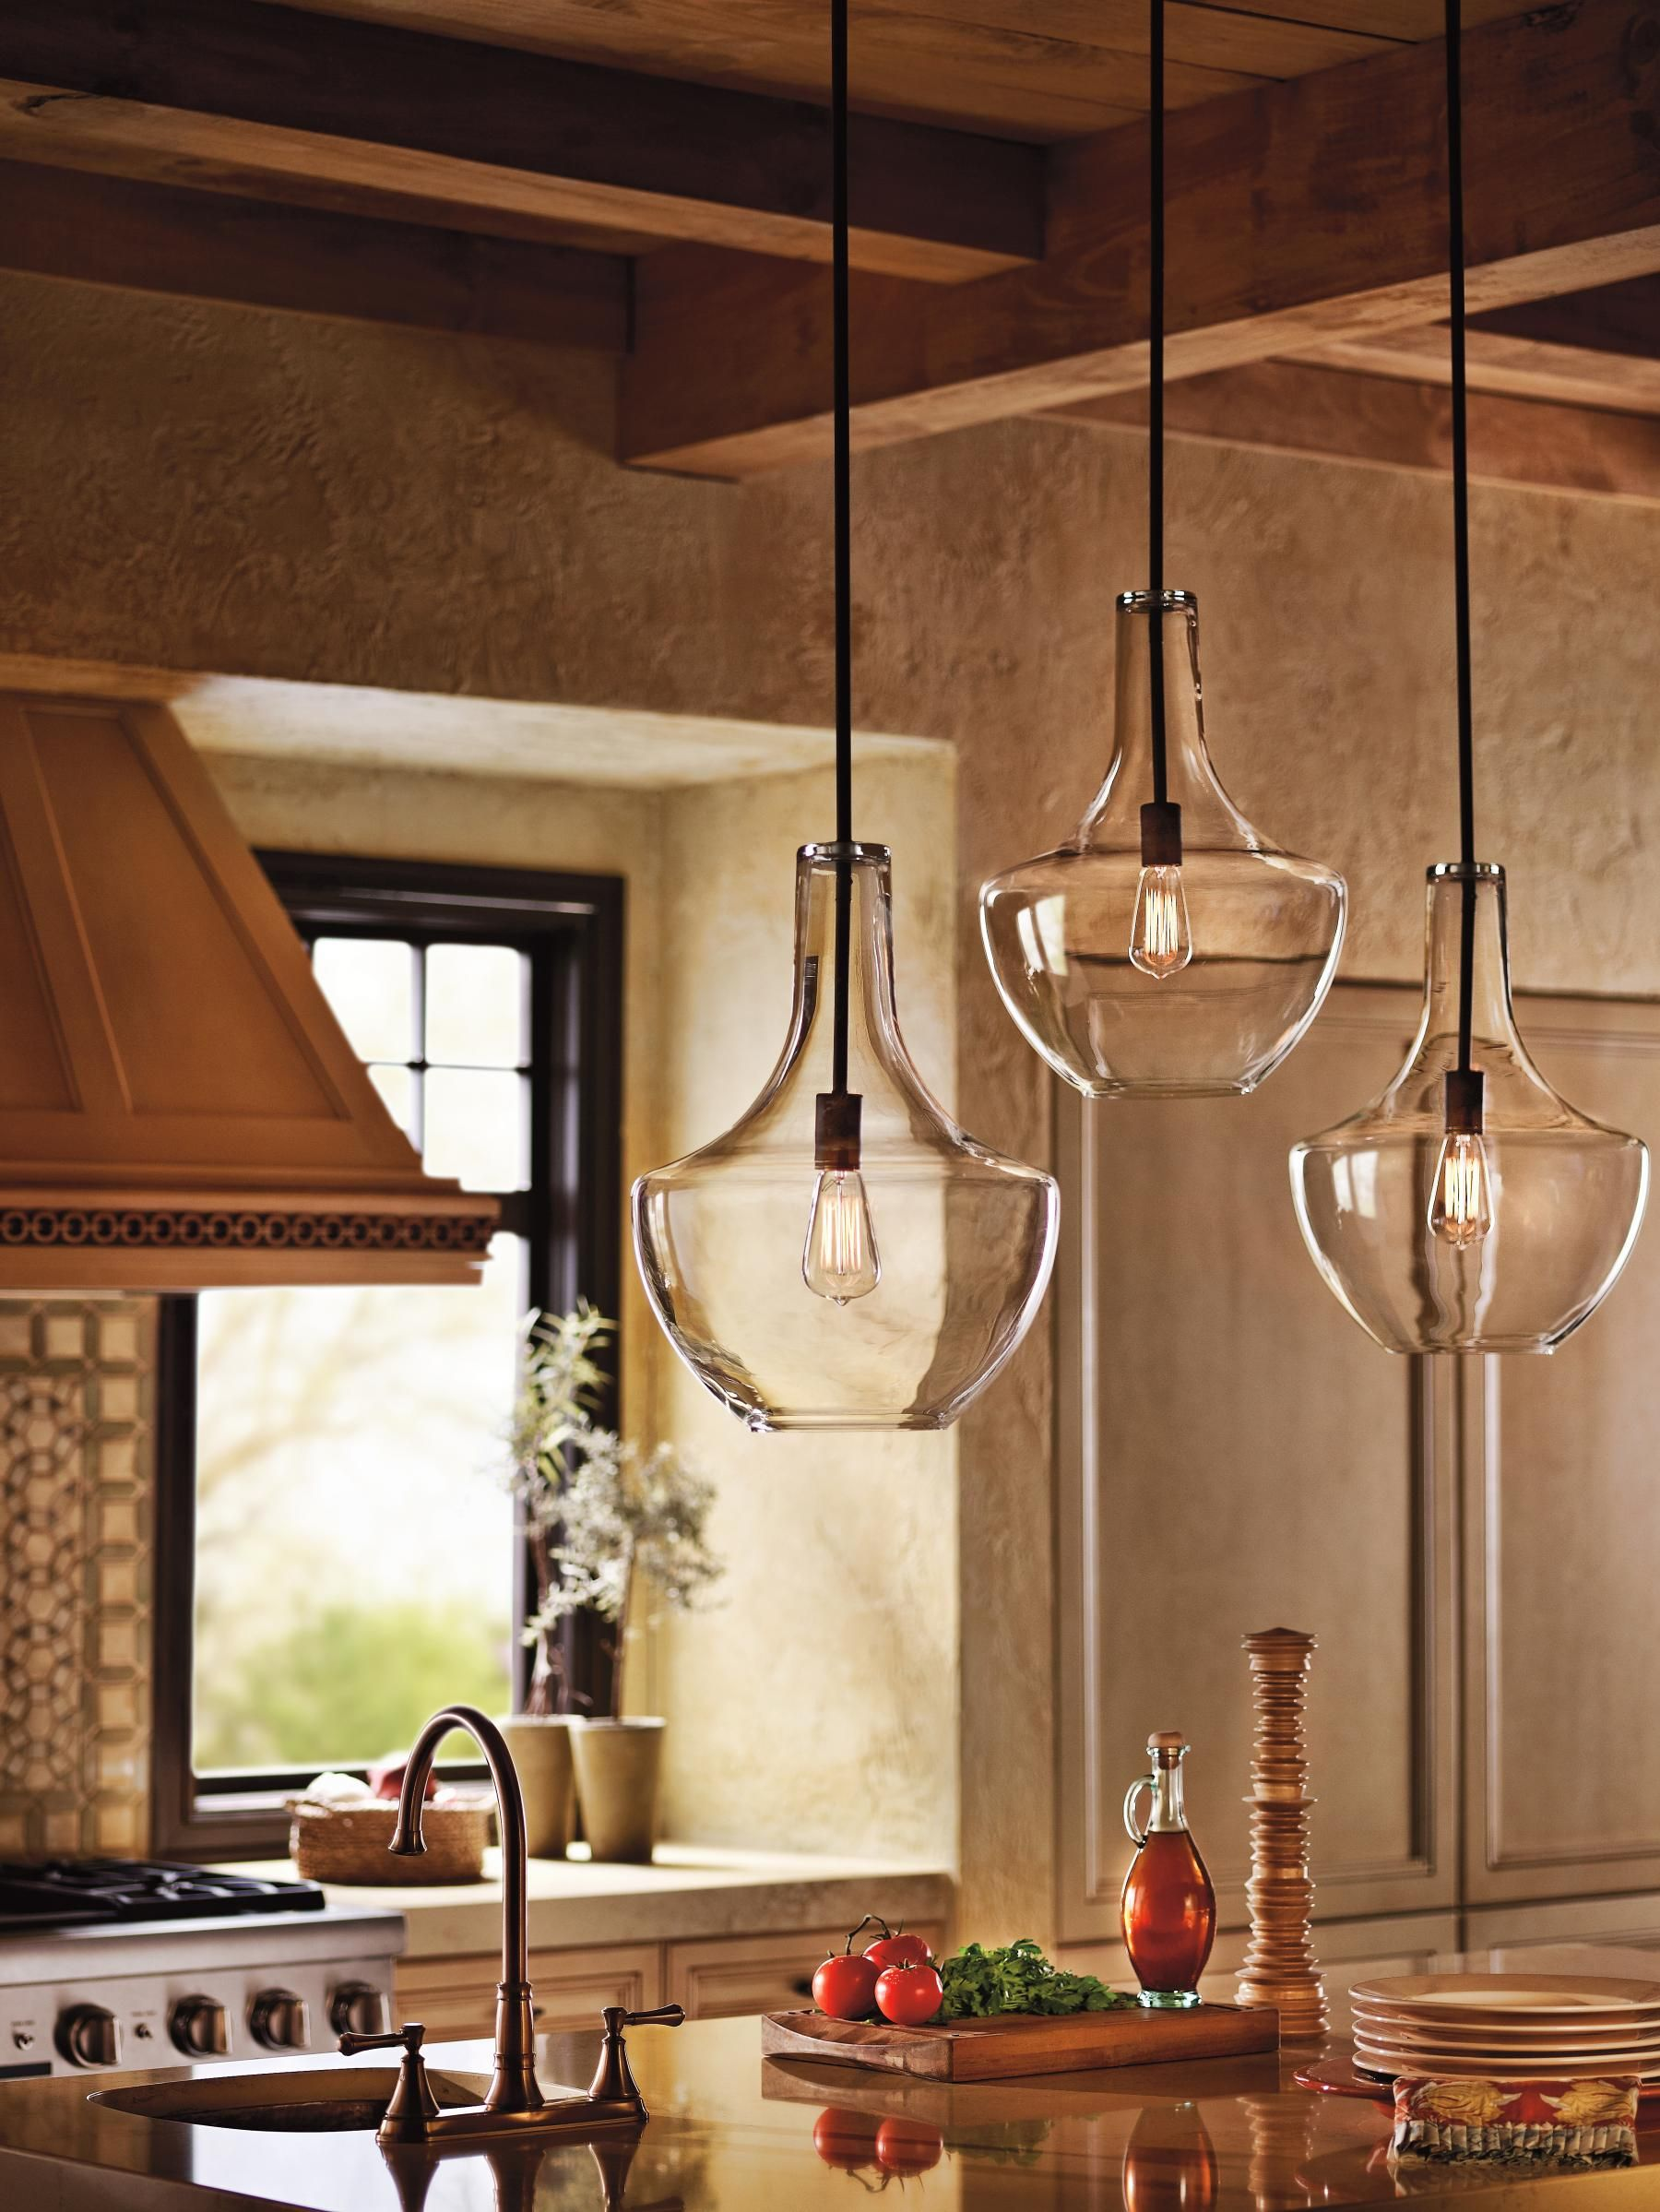 hanging kitchen lights This transitional style pendant is a perfect option to light up and decorate your kitchen